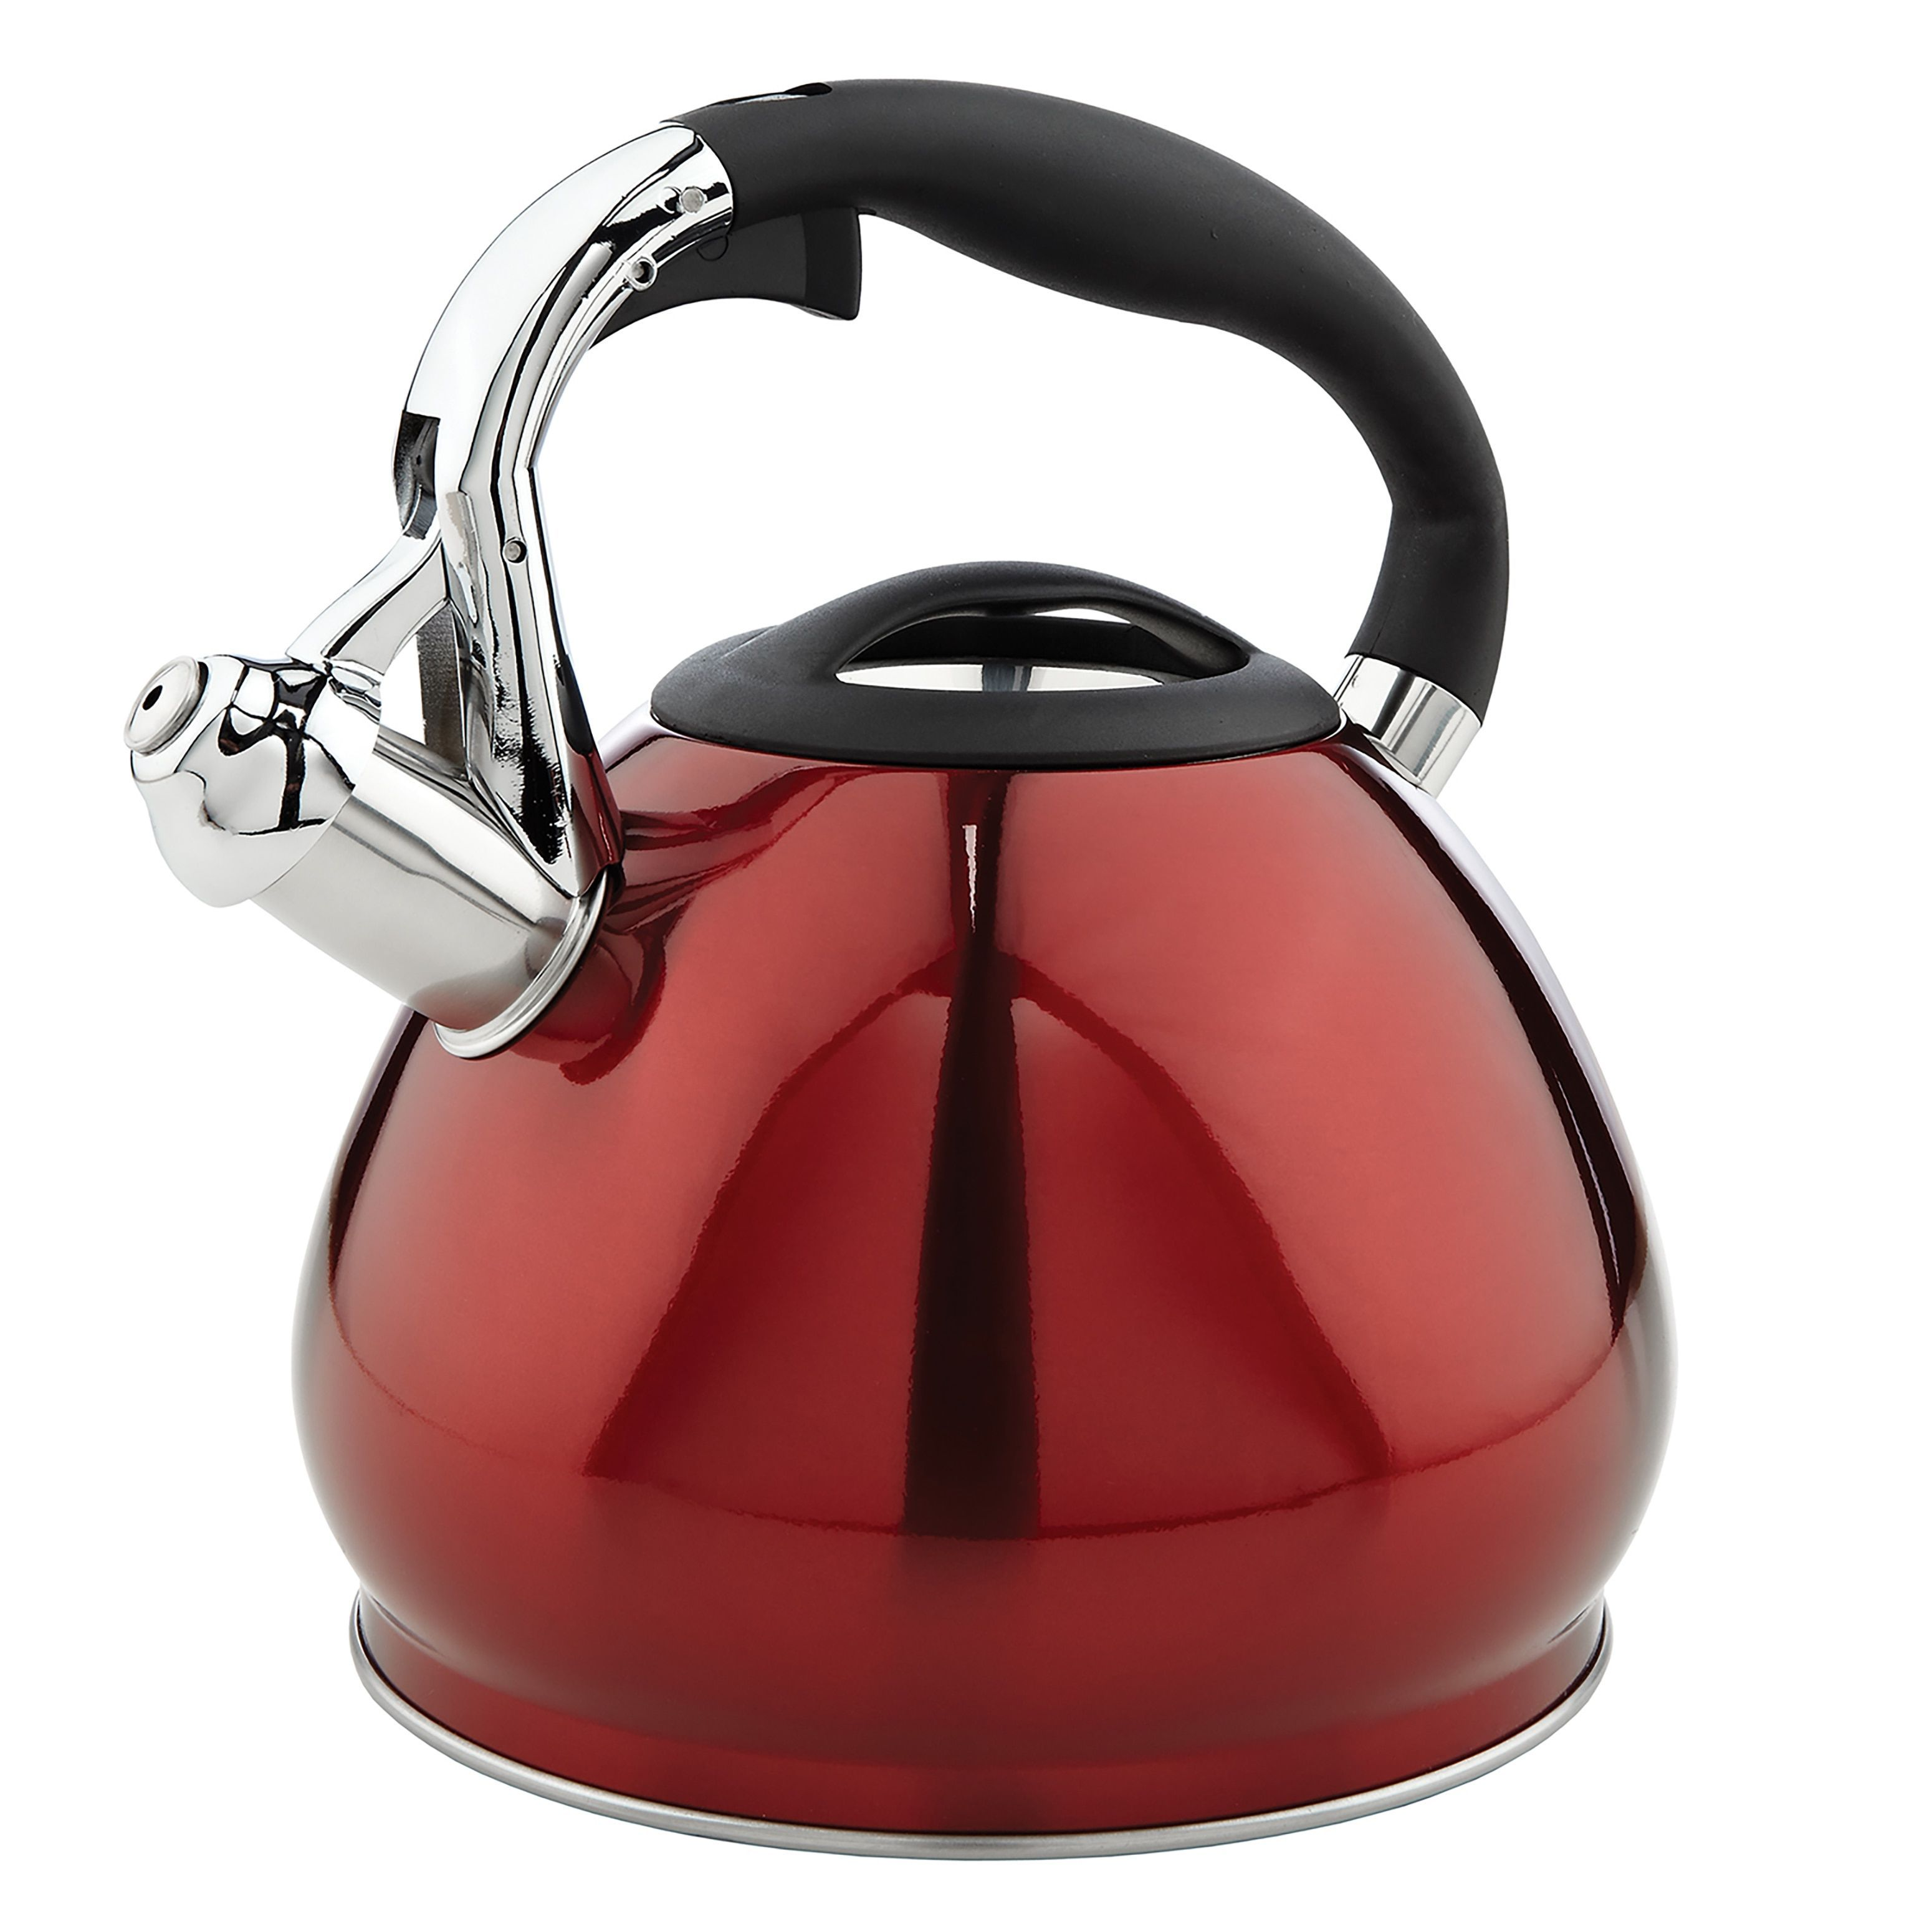 Simply kitchen details red stainless steel cup tea kettle tea